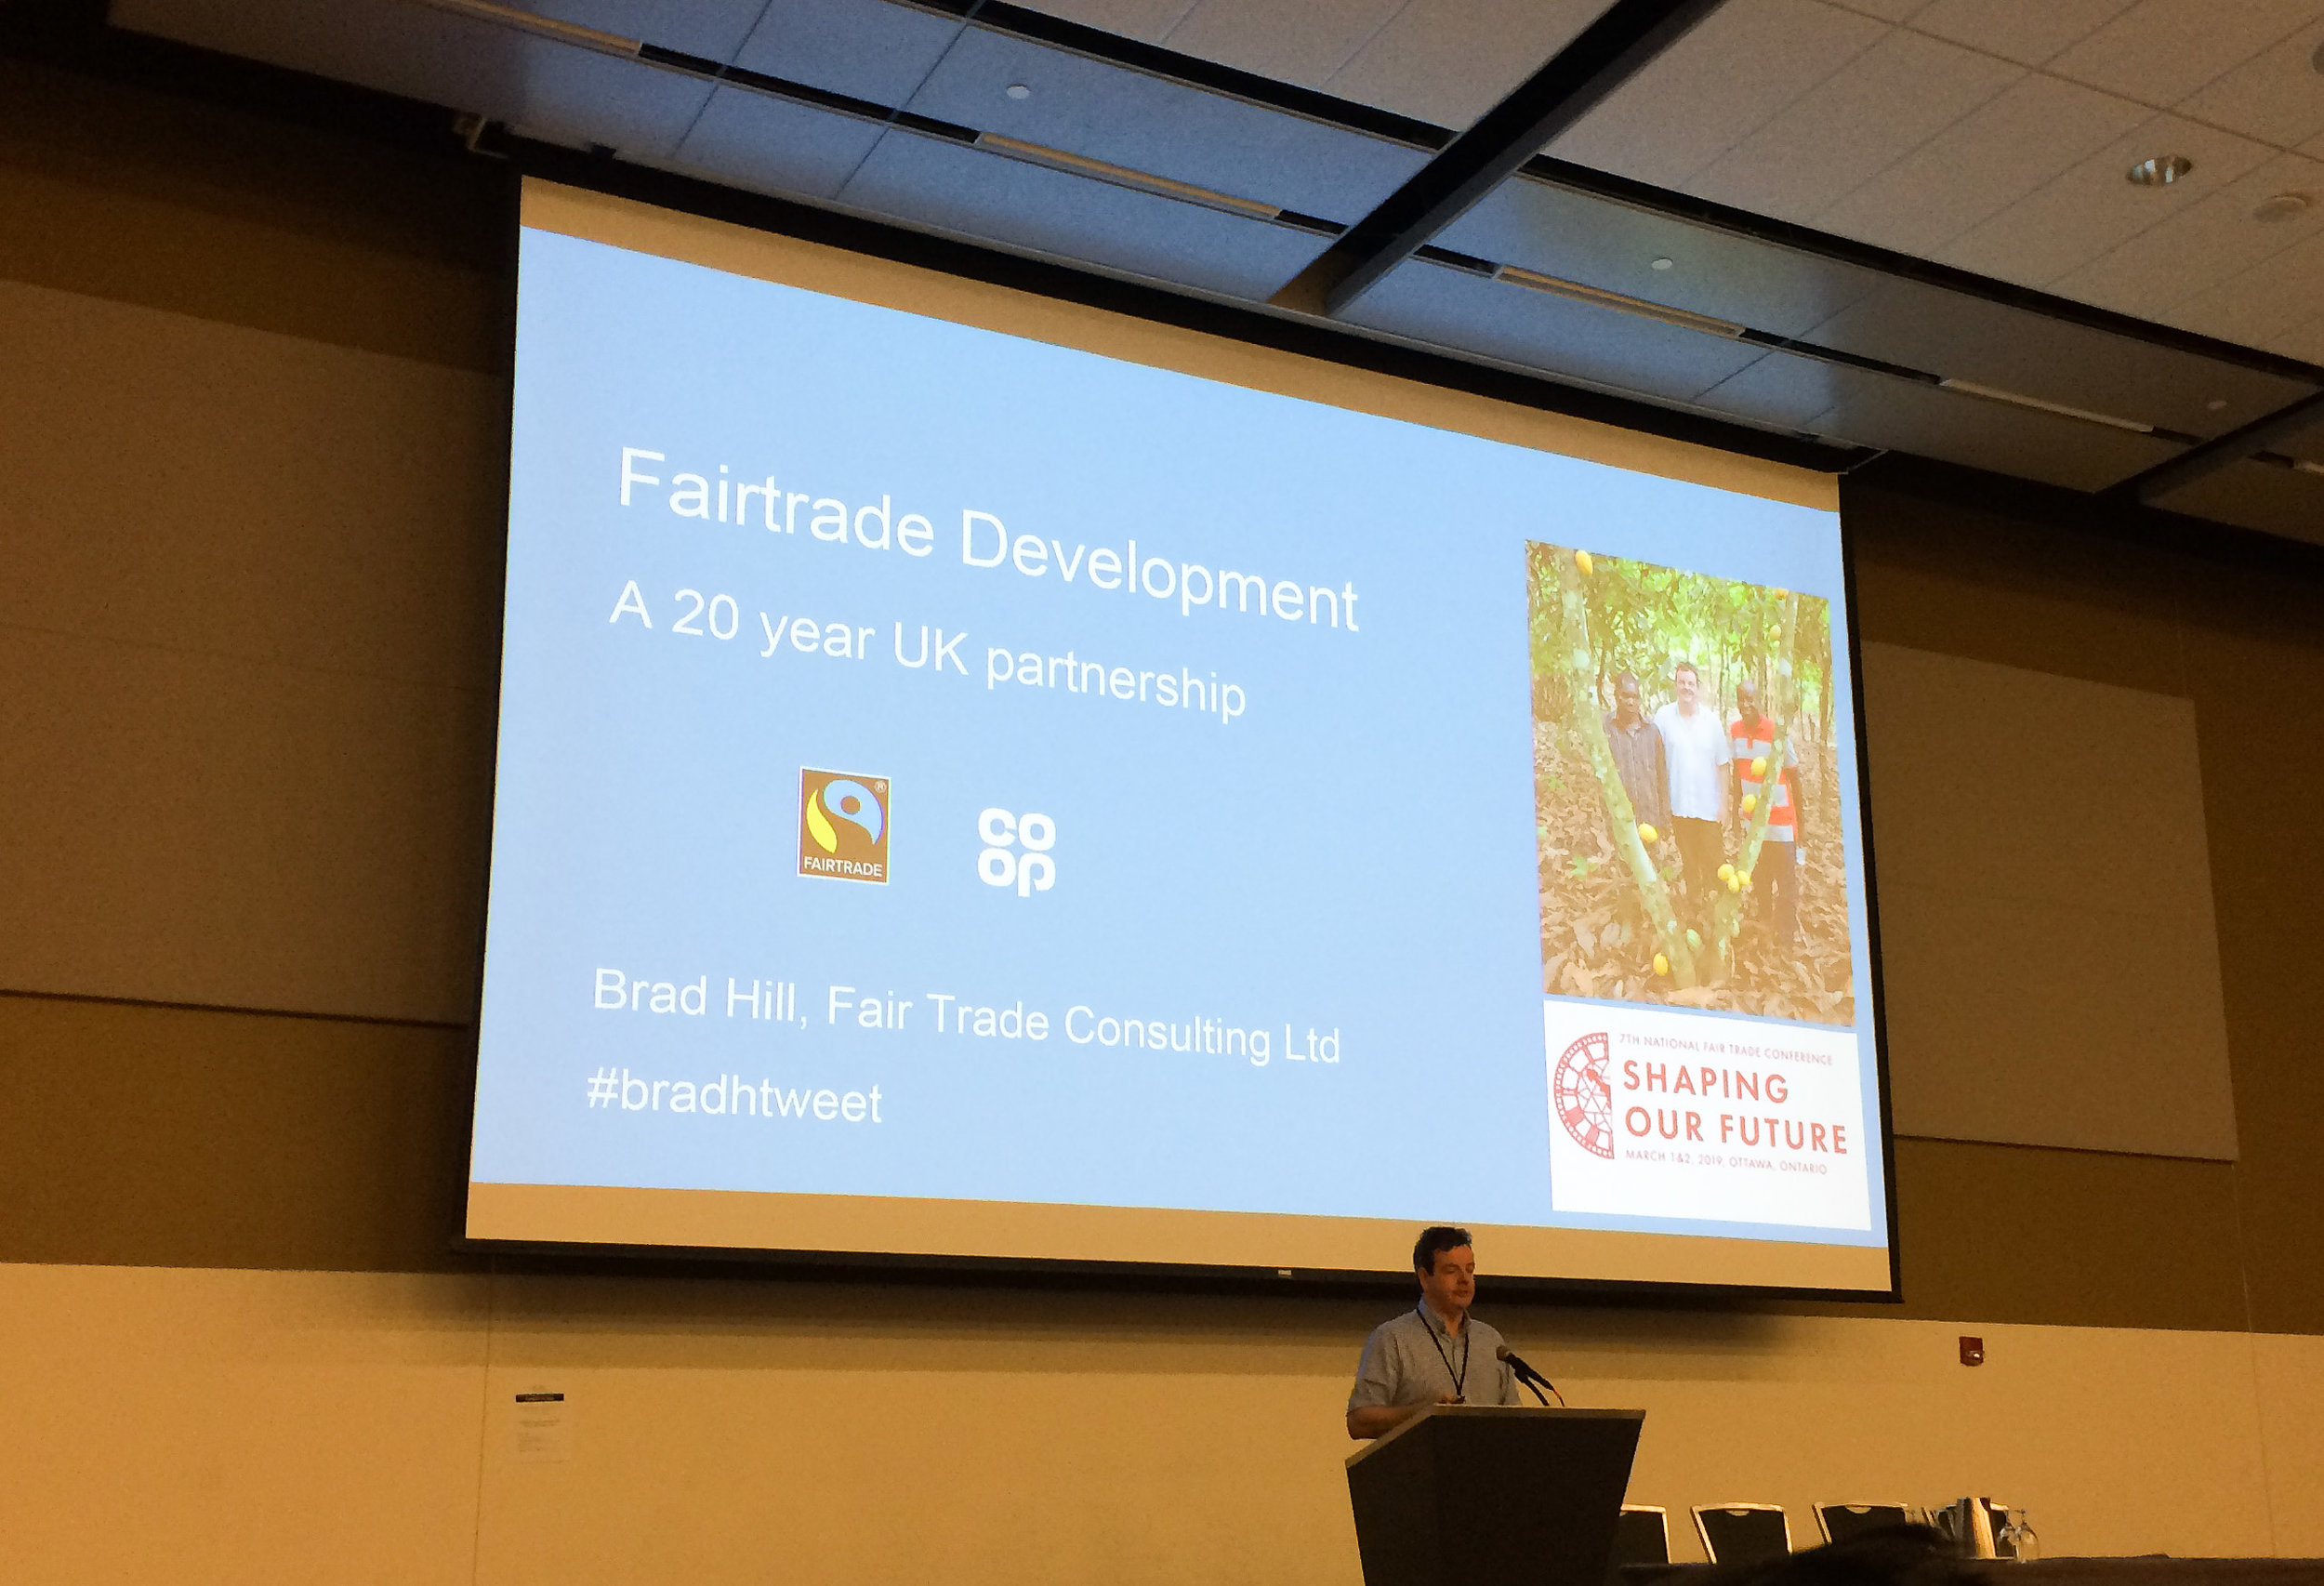 One of the speakers during the event was Brad Hill, one of the former executives of UK Coop stores who sell fair trade products almost exclusively.